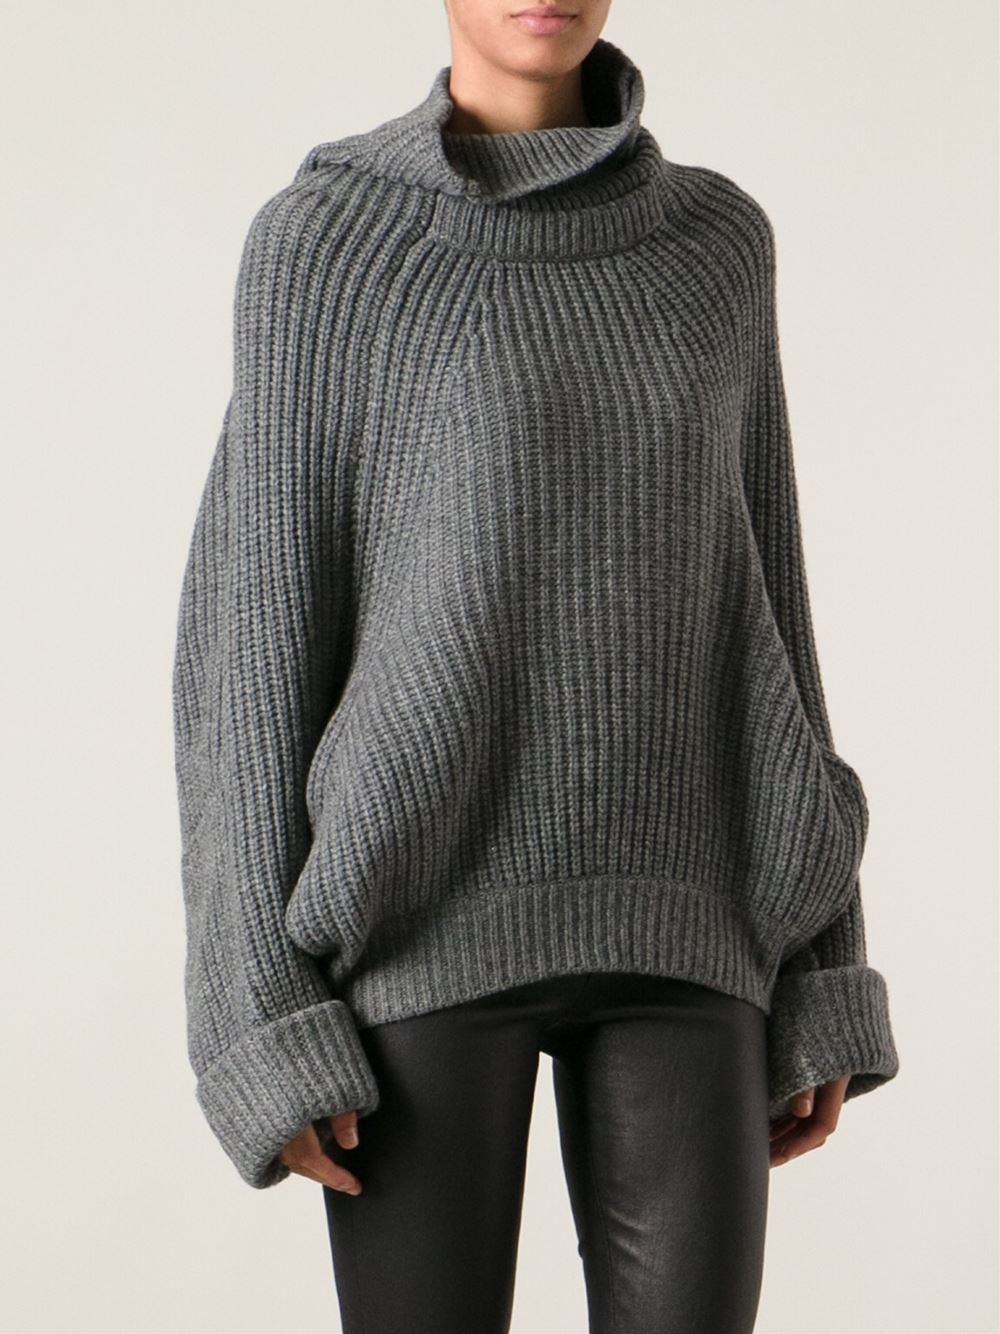 Find great deals on eBay for womens oversized sweaters. Shop with confidence.